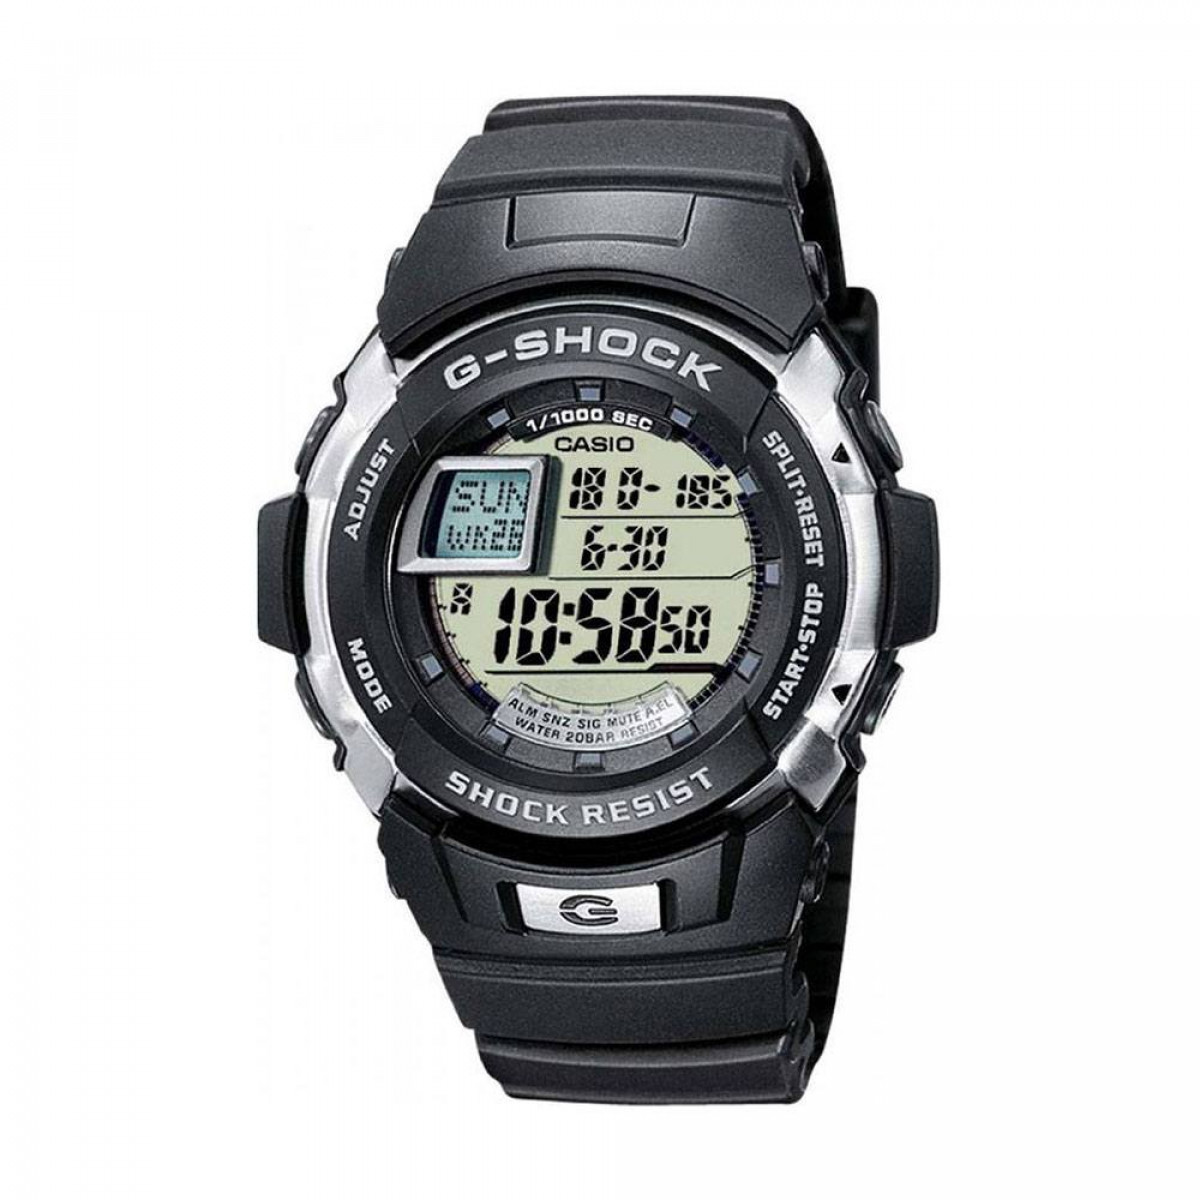 Часовник Casio G-Shock G-7700-1ER